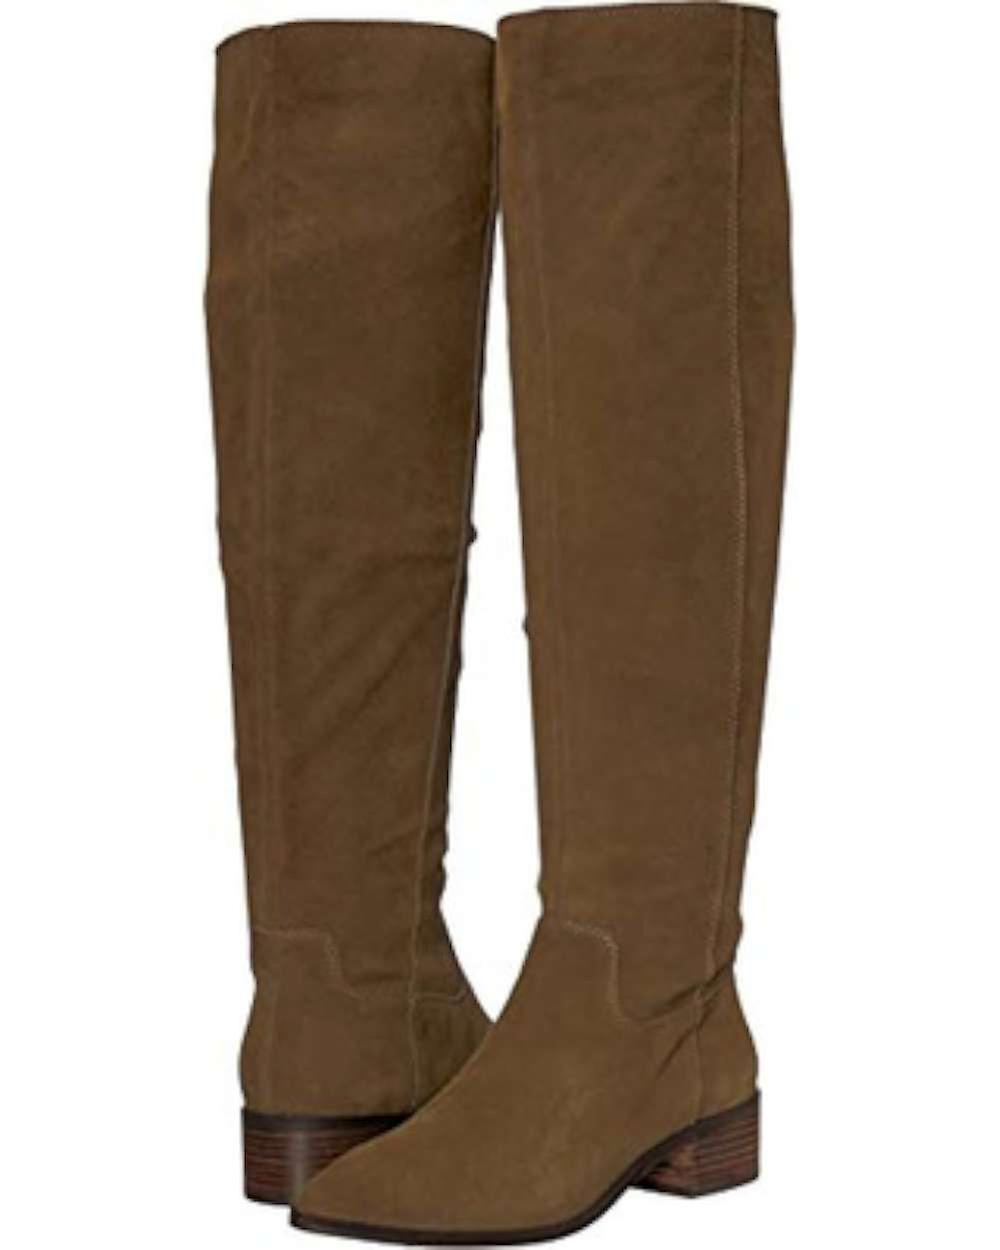 Lucky Brand Womens Kitrie Fabric Pointed Toe Knee High Fashion Boots